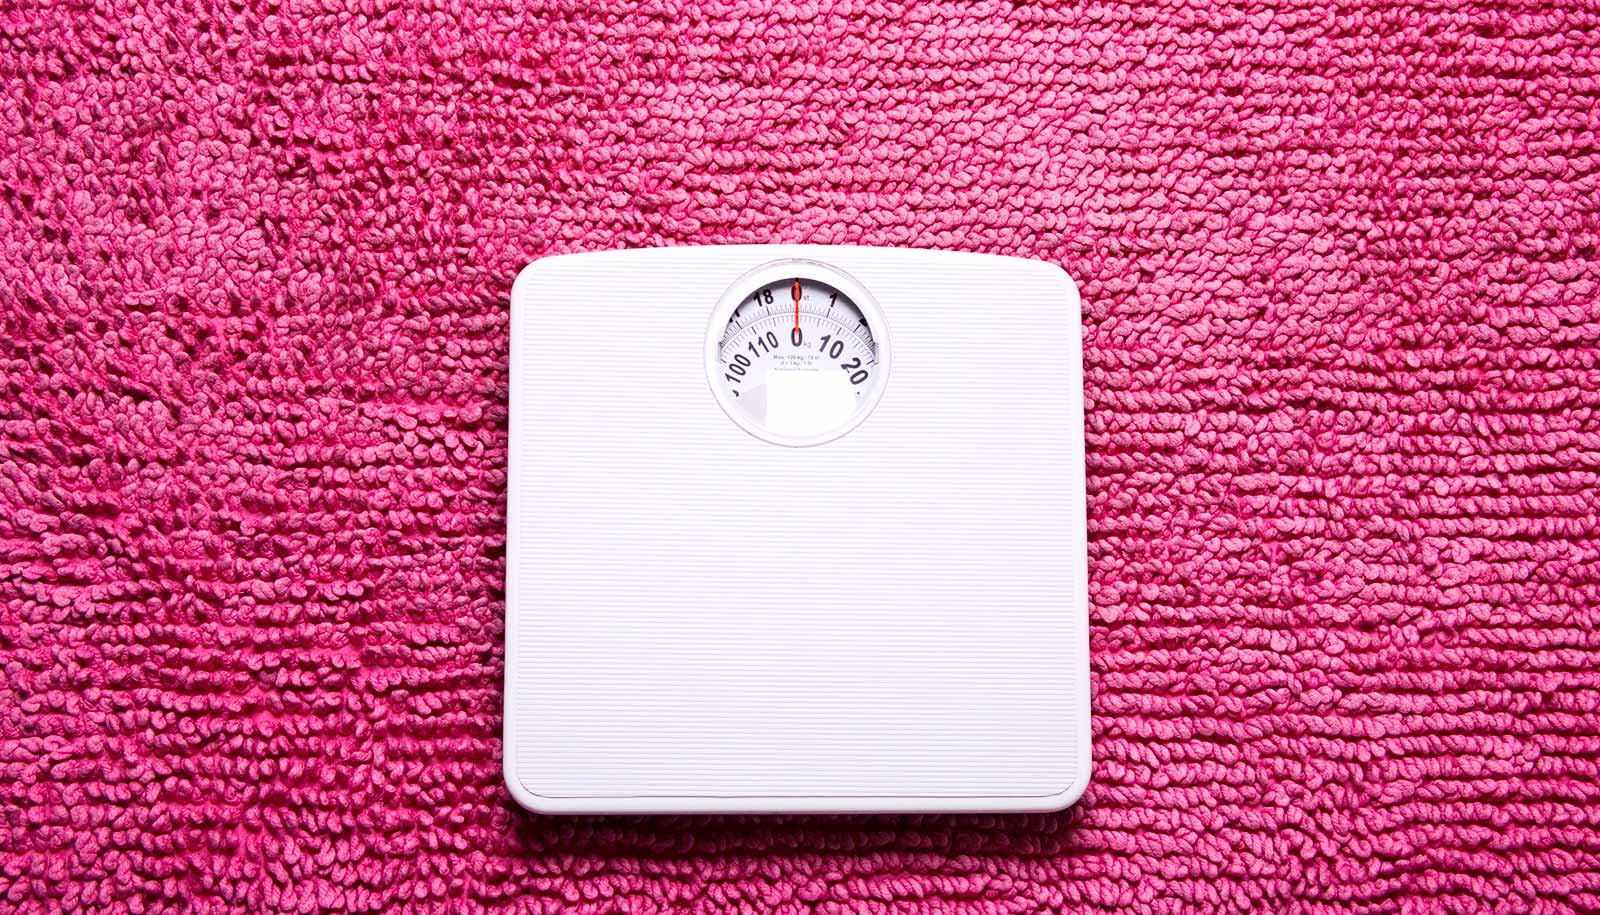 For older adults, change in weight linked to death risk